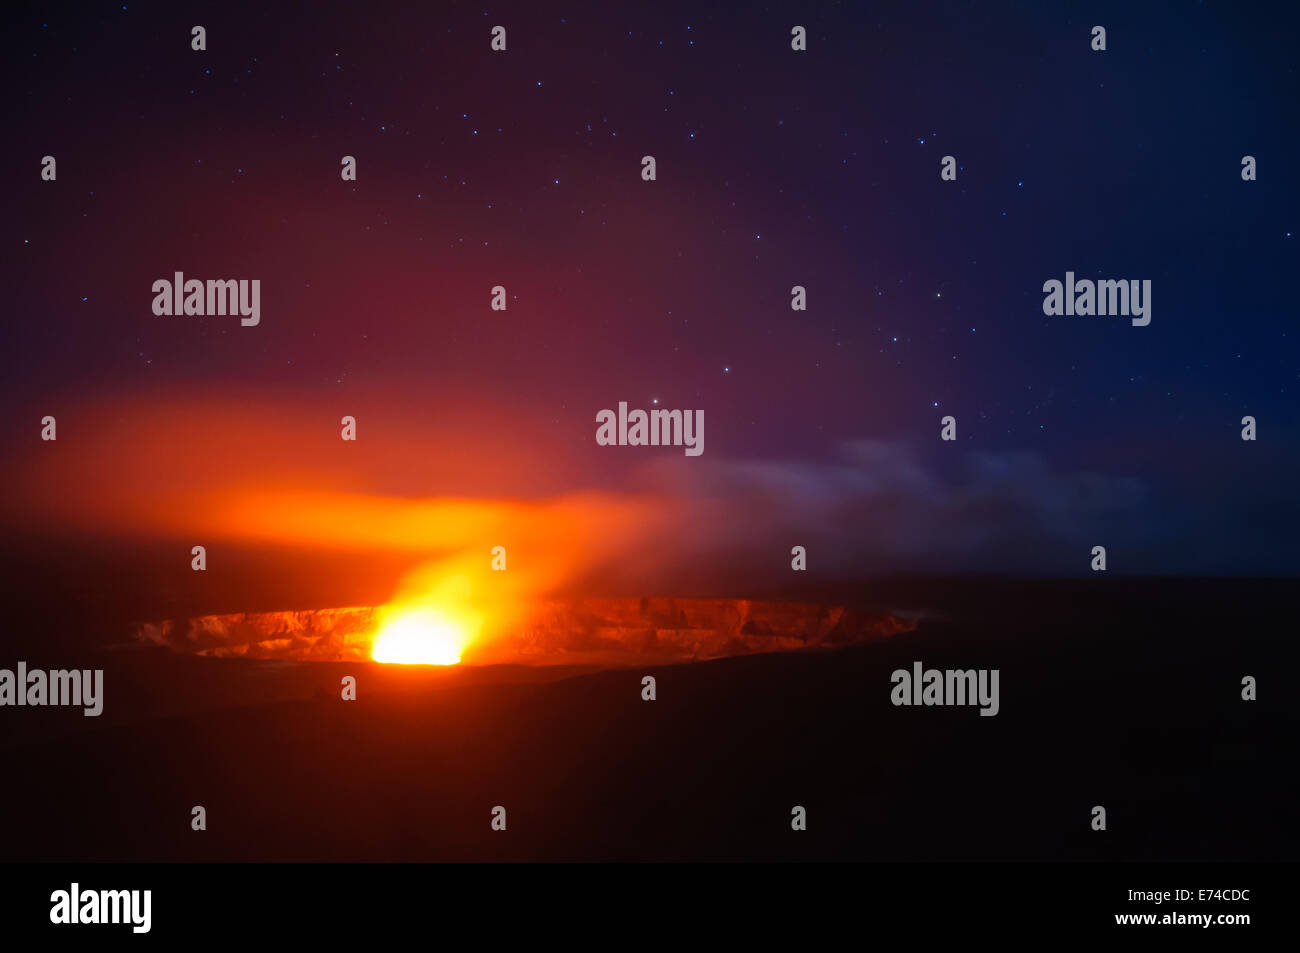 The Kilauea Magma chamber glowing below a night sky with stars. - Stock Image